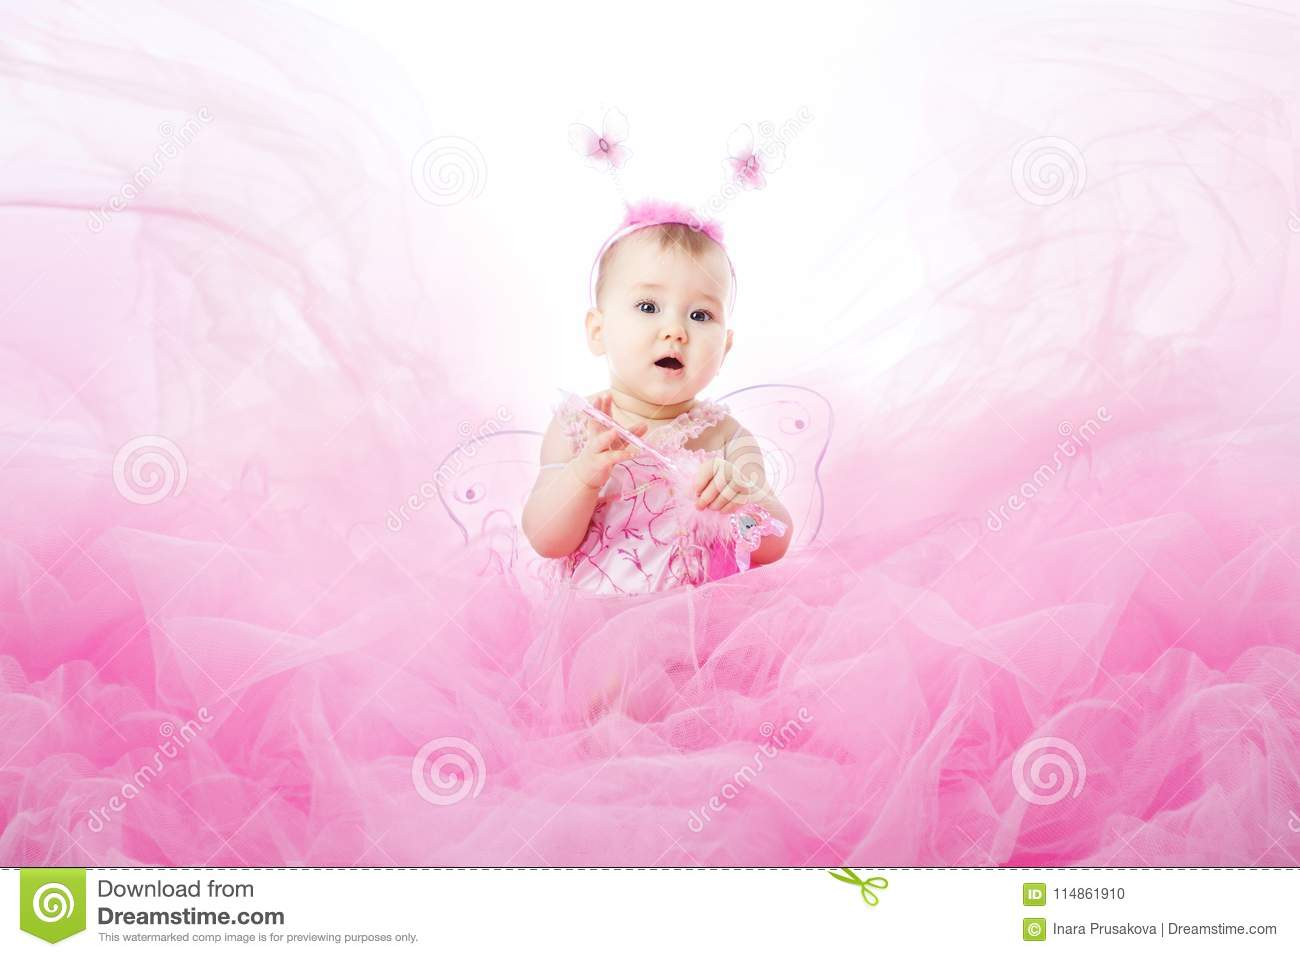 97f871568 Baby Girl in Pink Dress, Beautiful Child Portrait, Cute Infant Kid Dressed  in Fairy Butterfly Costume